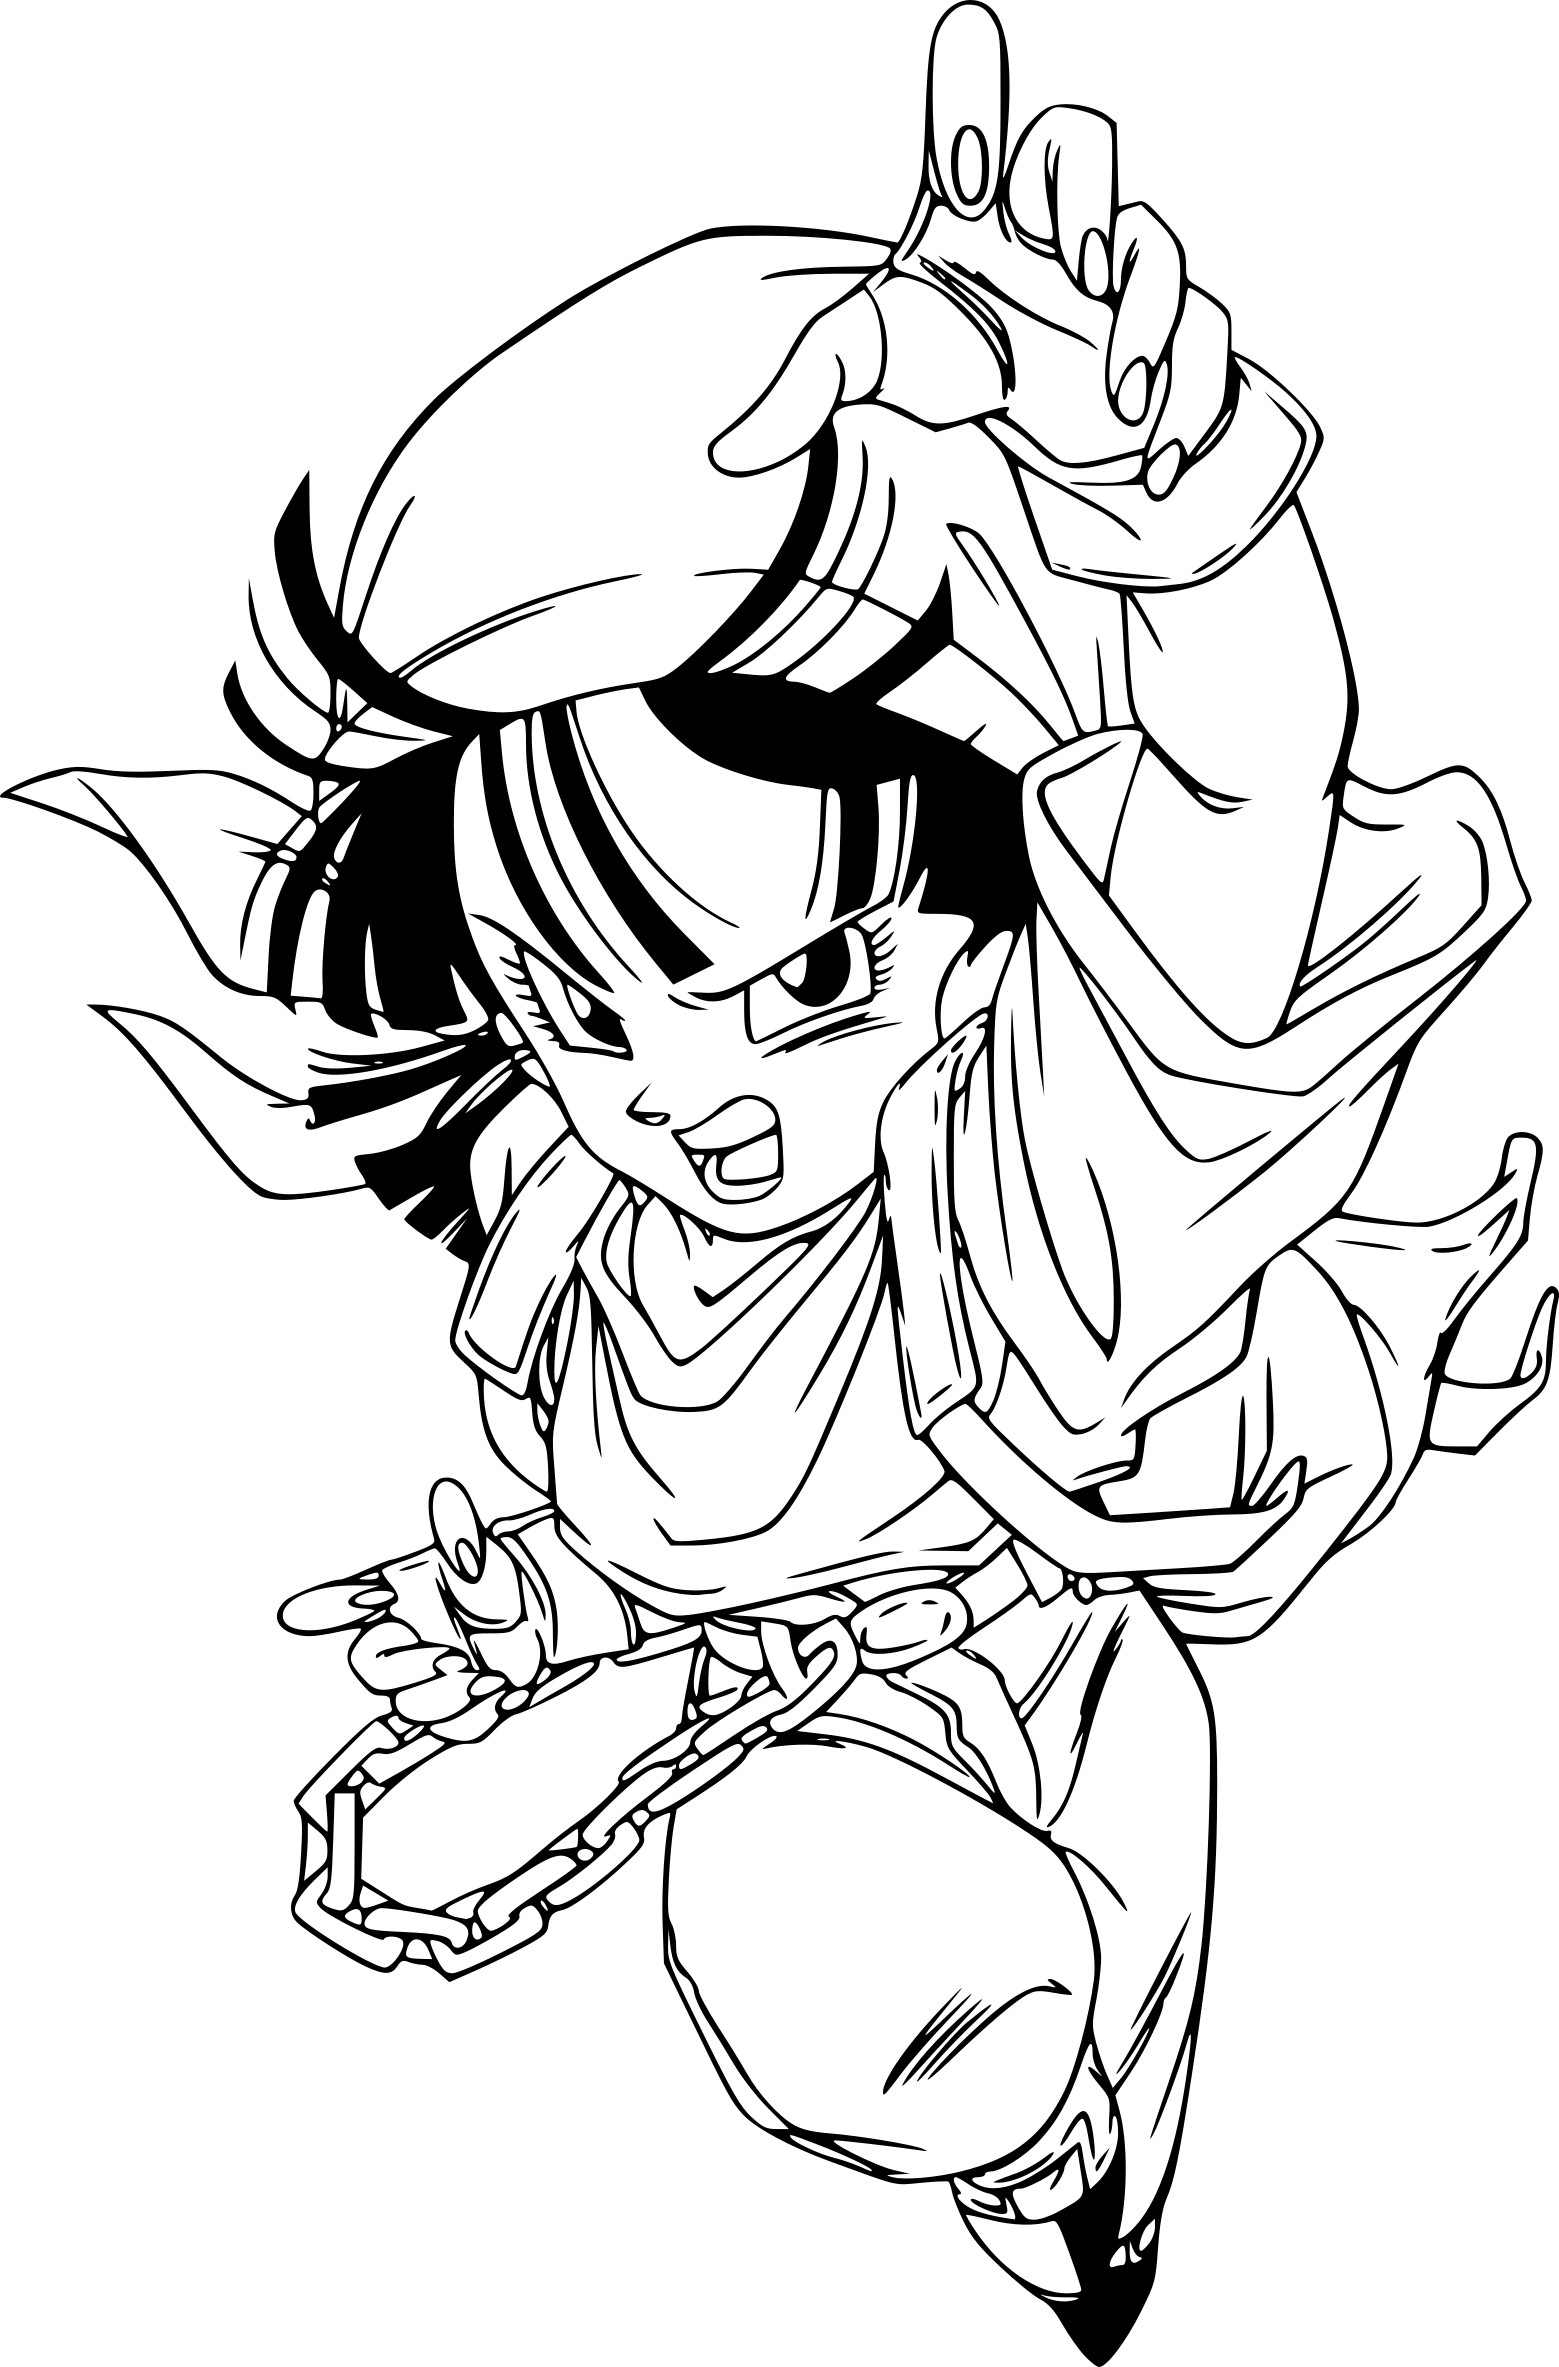 Printable coloring pages of dragonball gt ~ Coloriage Pan | My blog